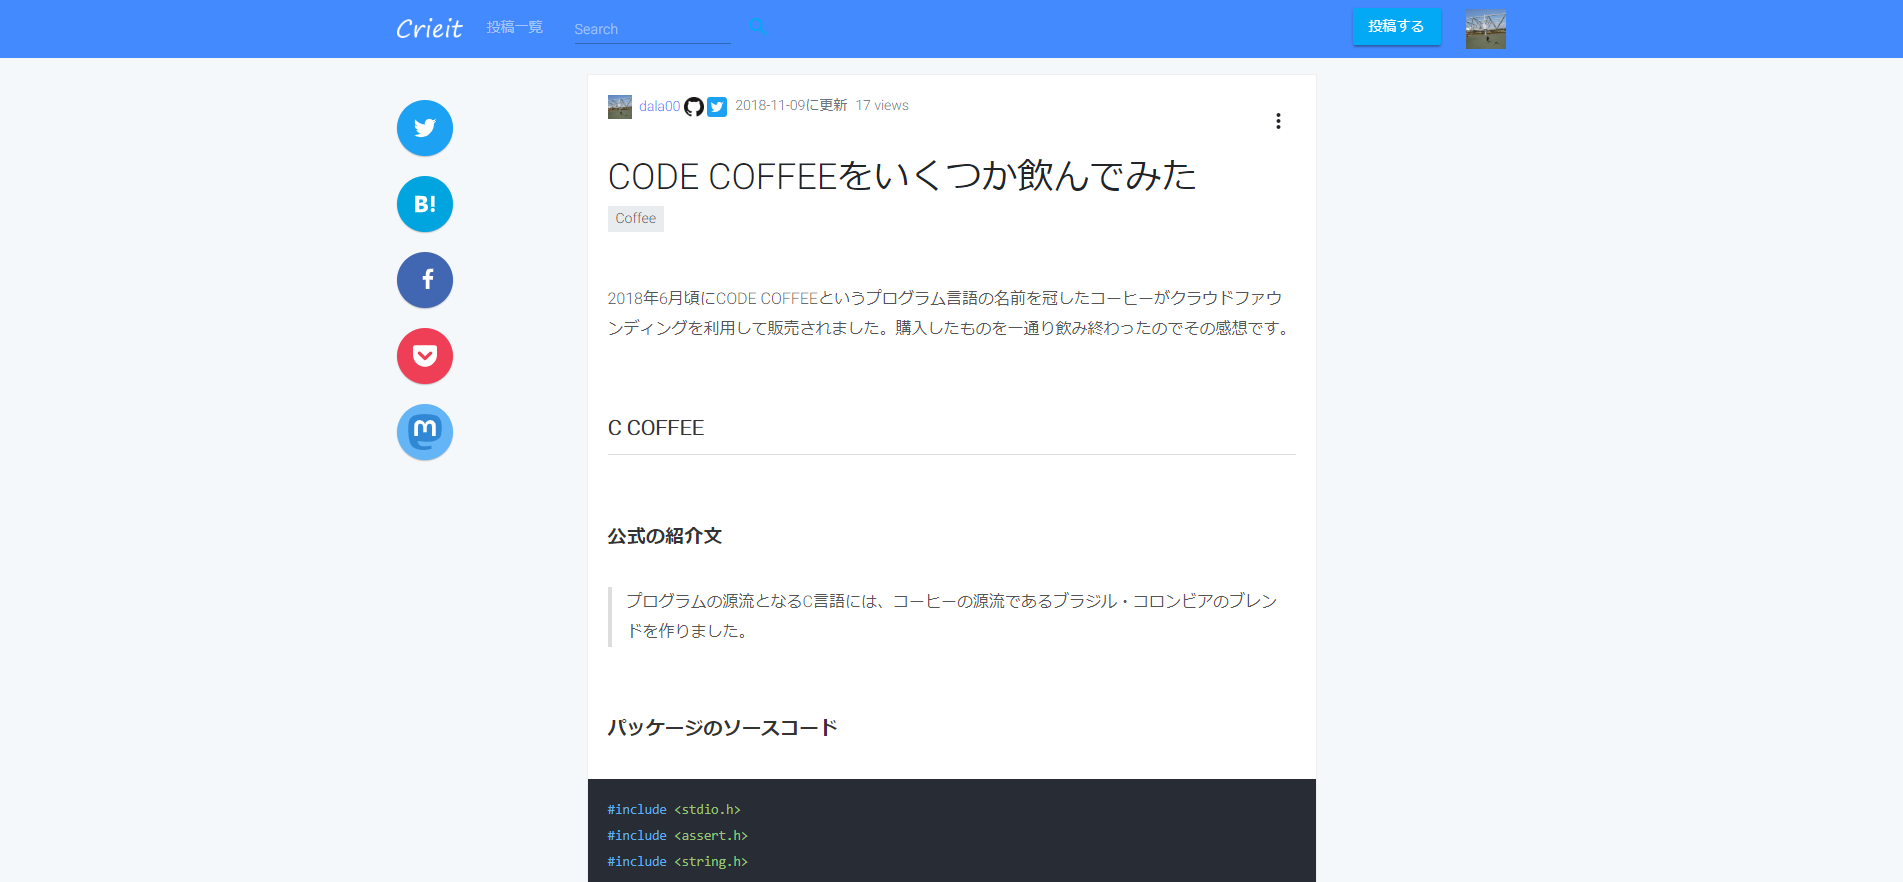 CODE COFFEEをいくつか飲んでみた   Crieit.png